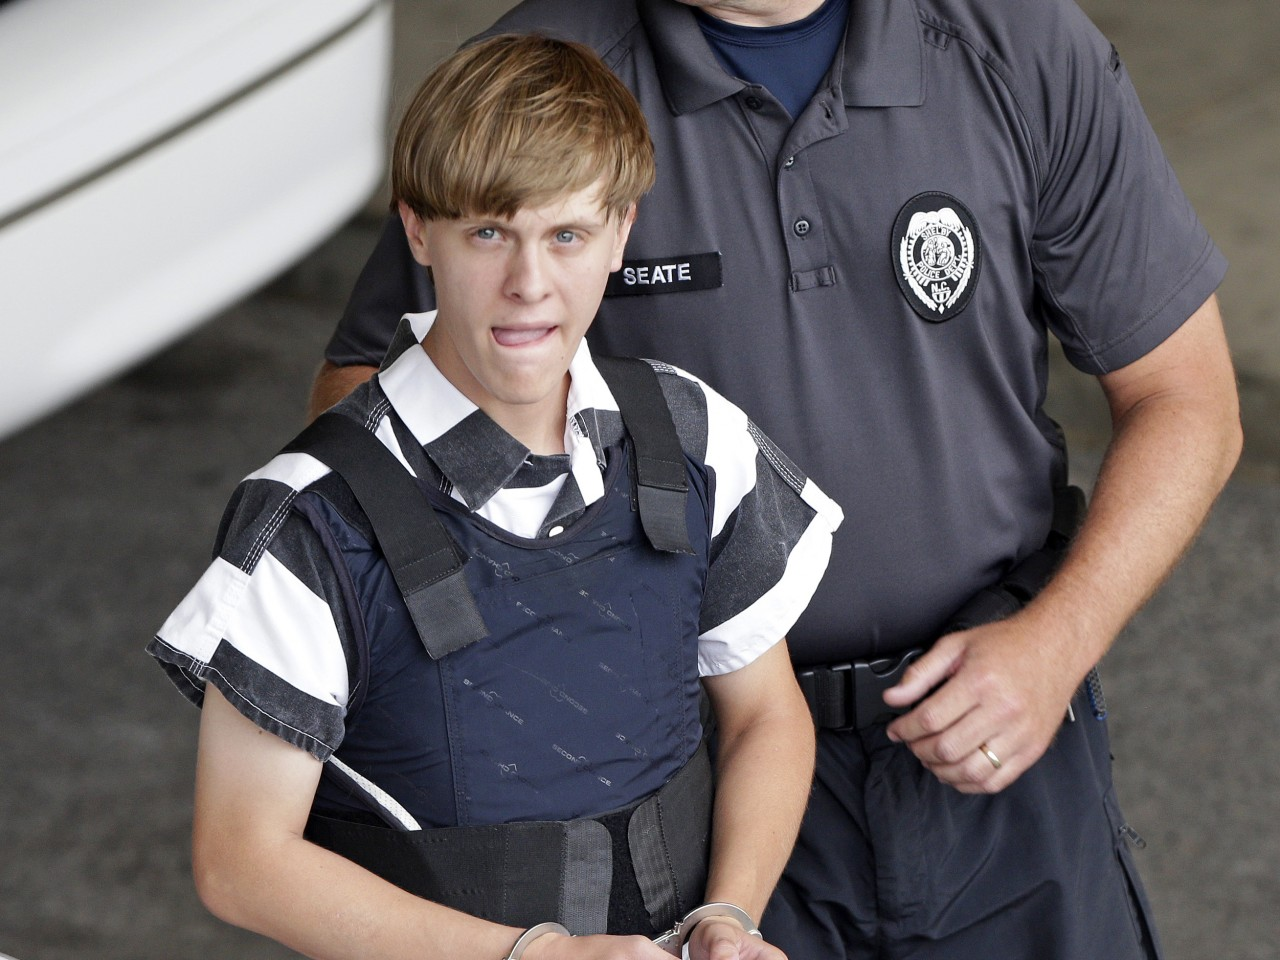 Church Shooter Dylann Roof Is Assaulted In Jail Wall